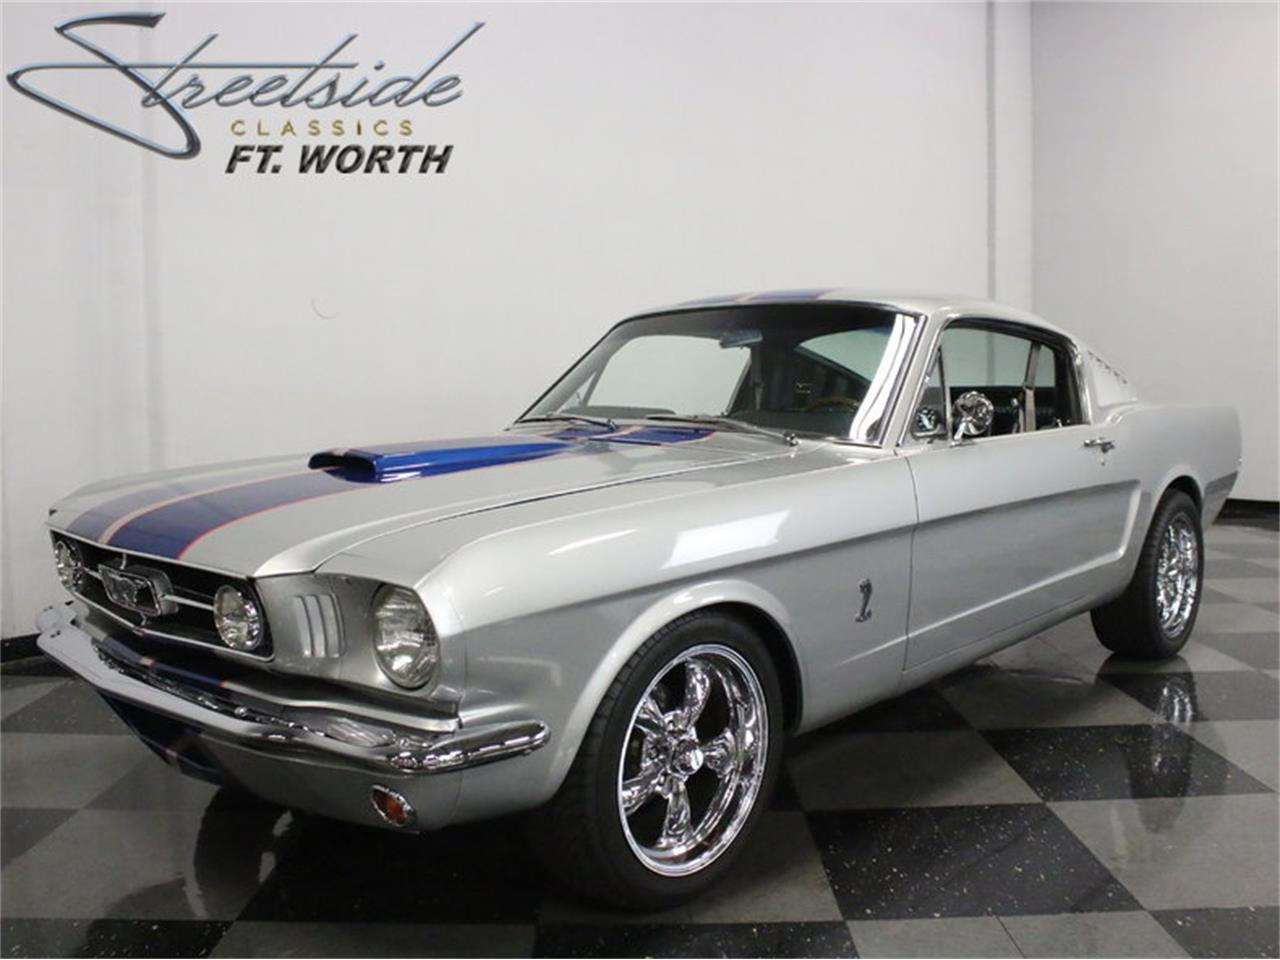 Large picture of 65 mustang fastback restomod l8an